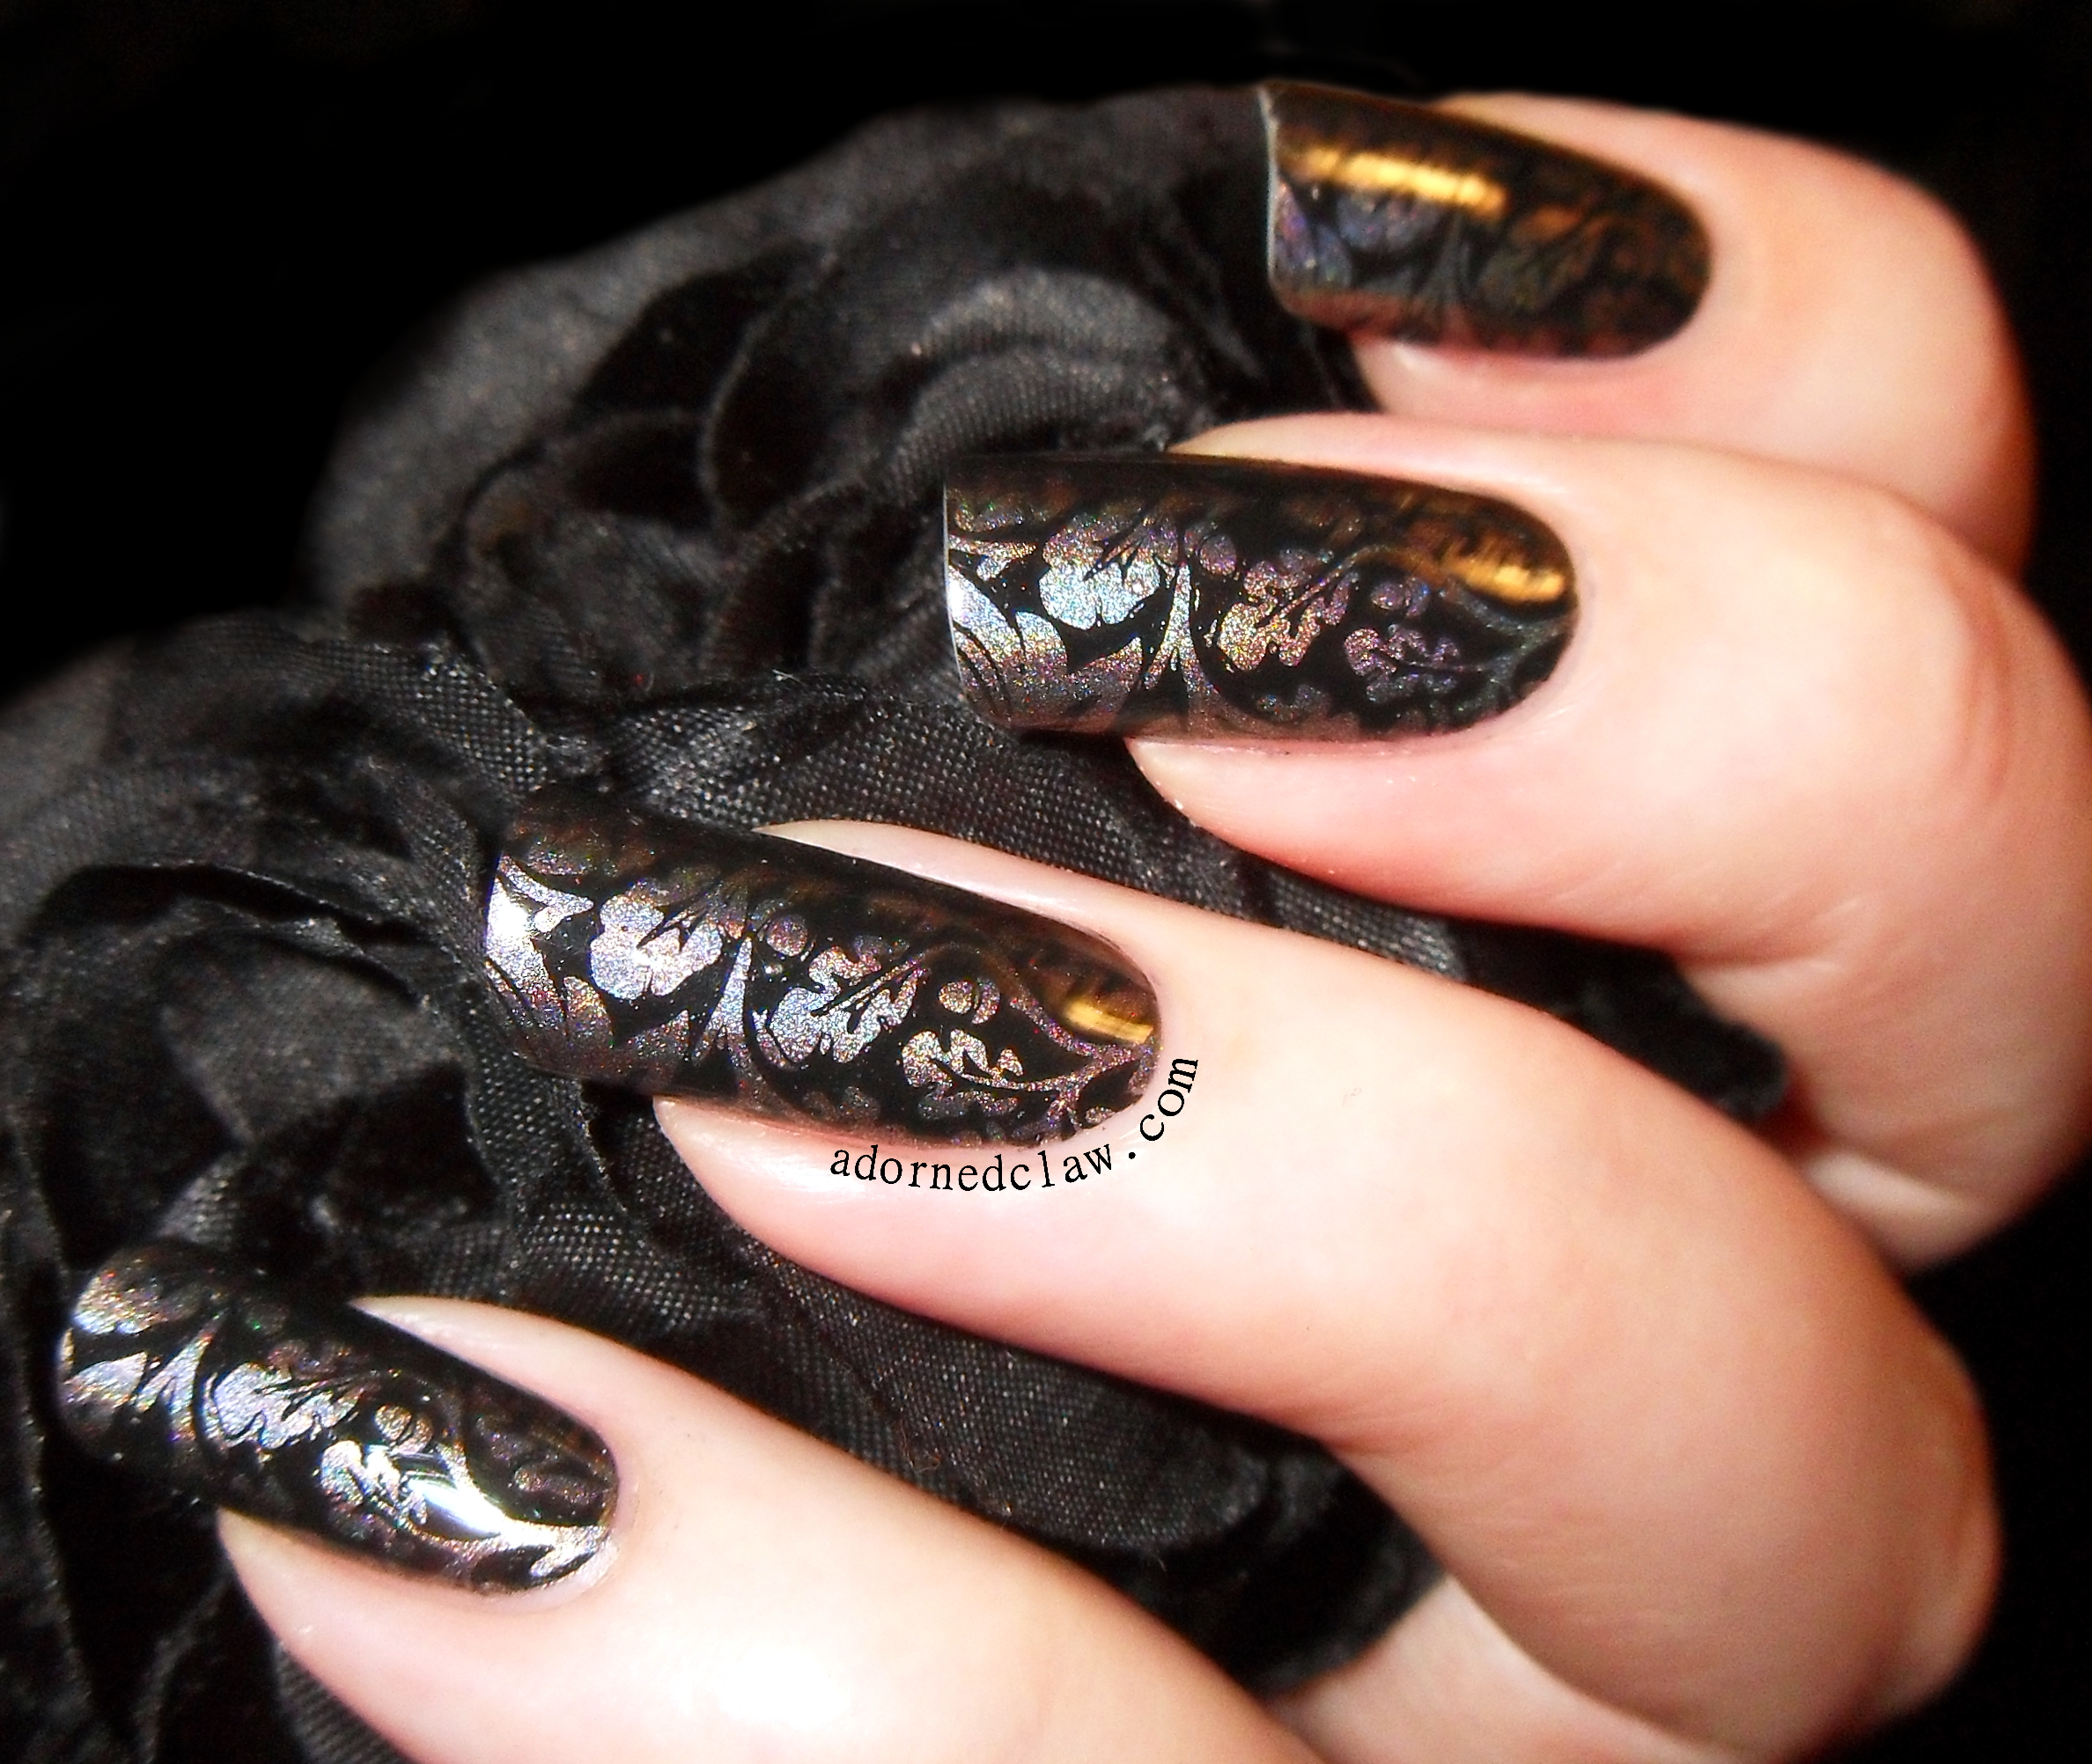 The Adorned Claw: Holographic Grey Nails With MM16